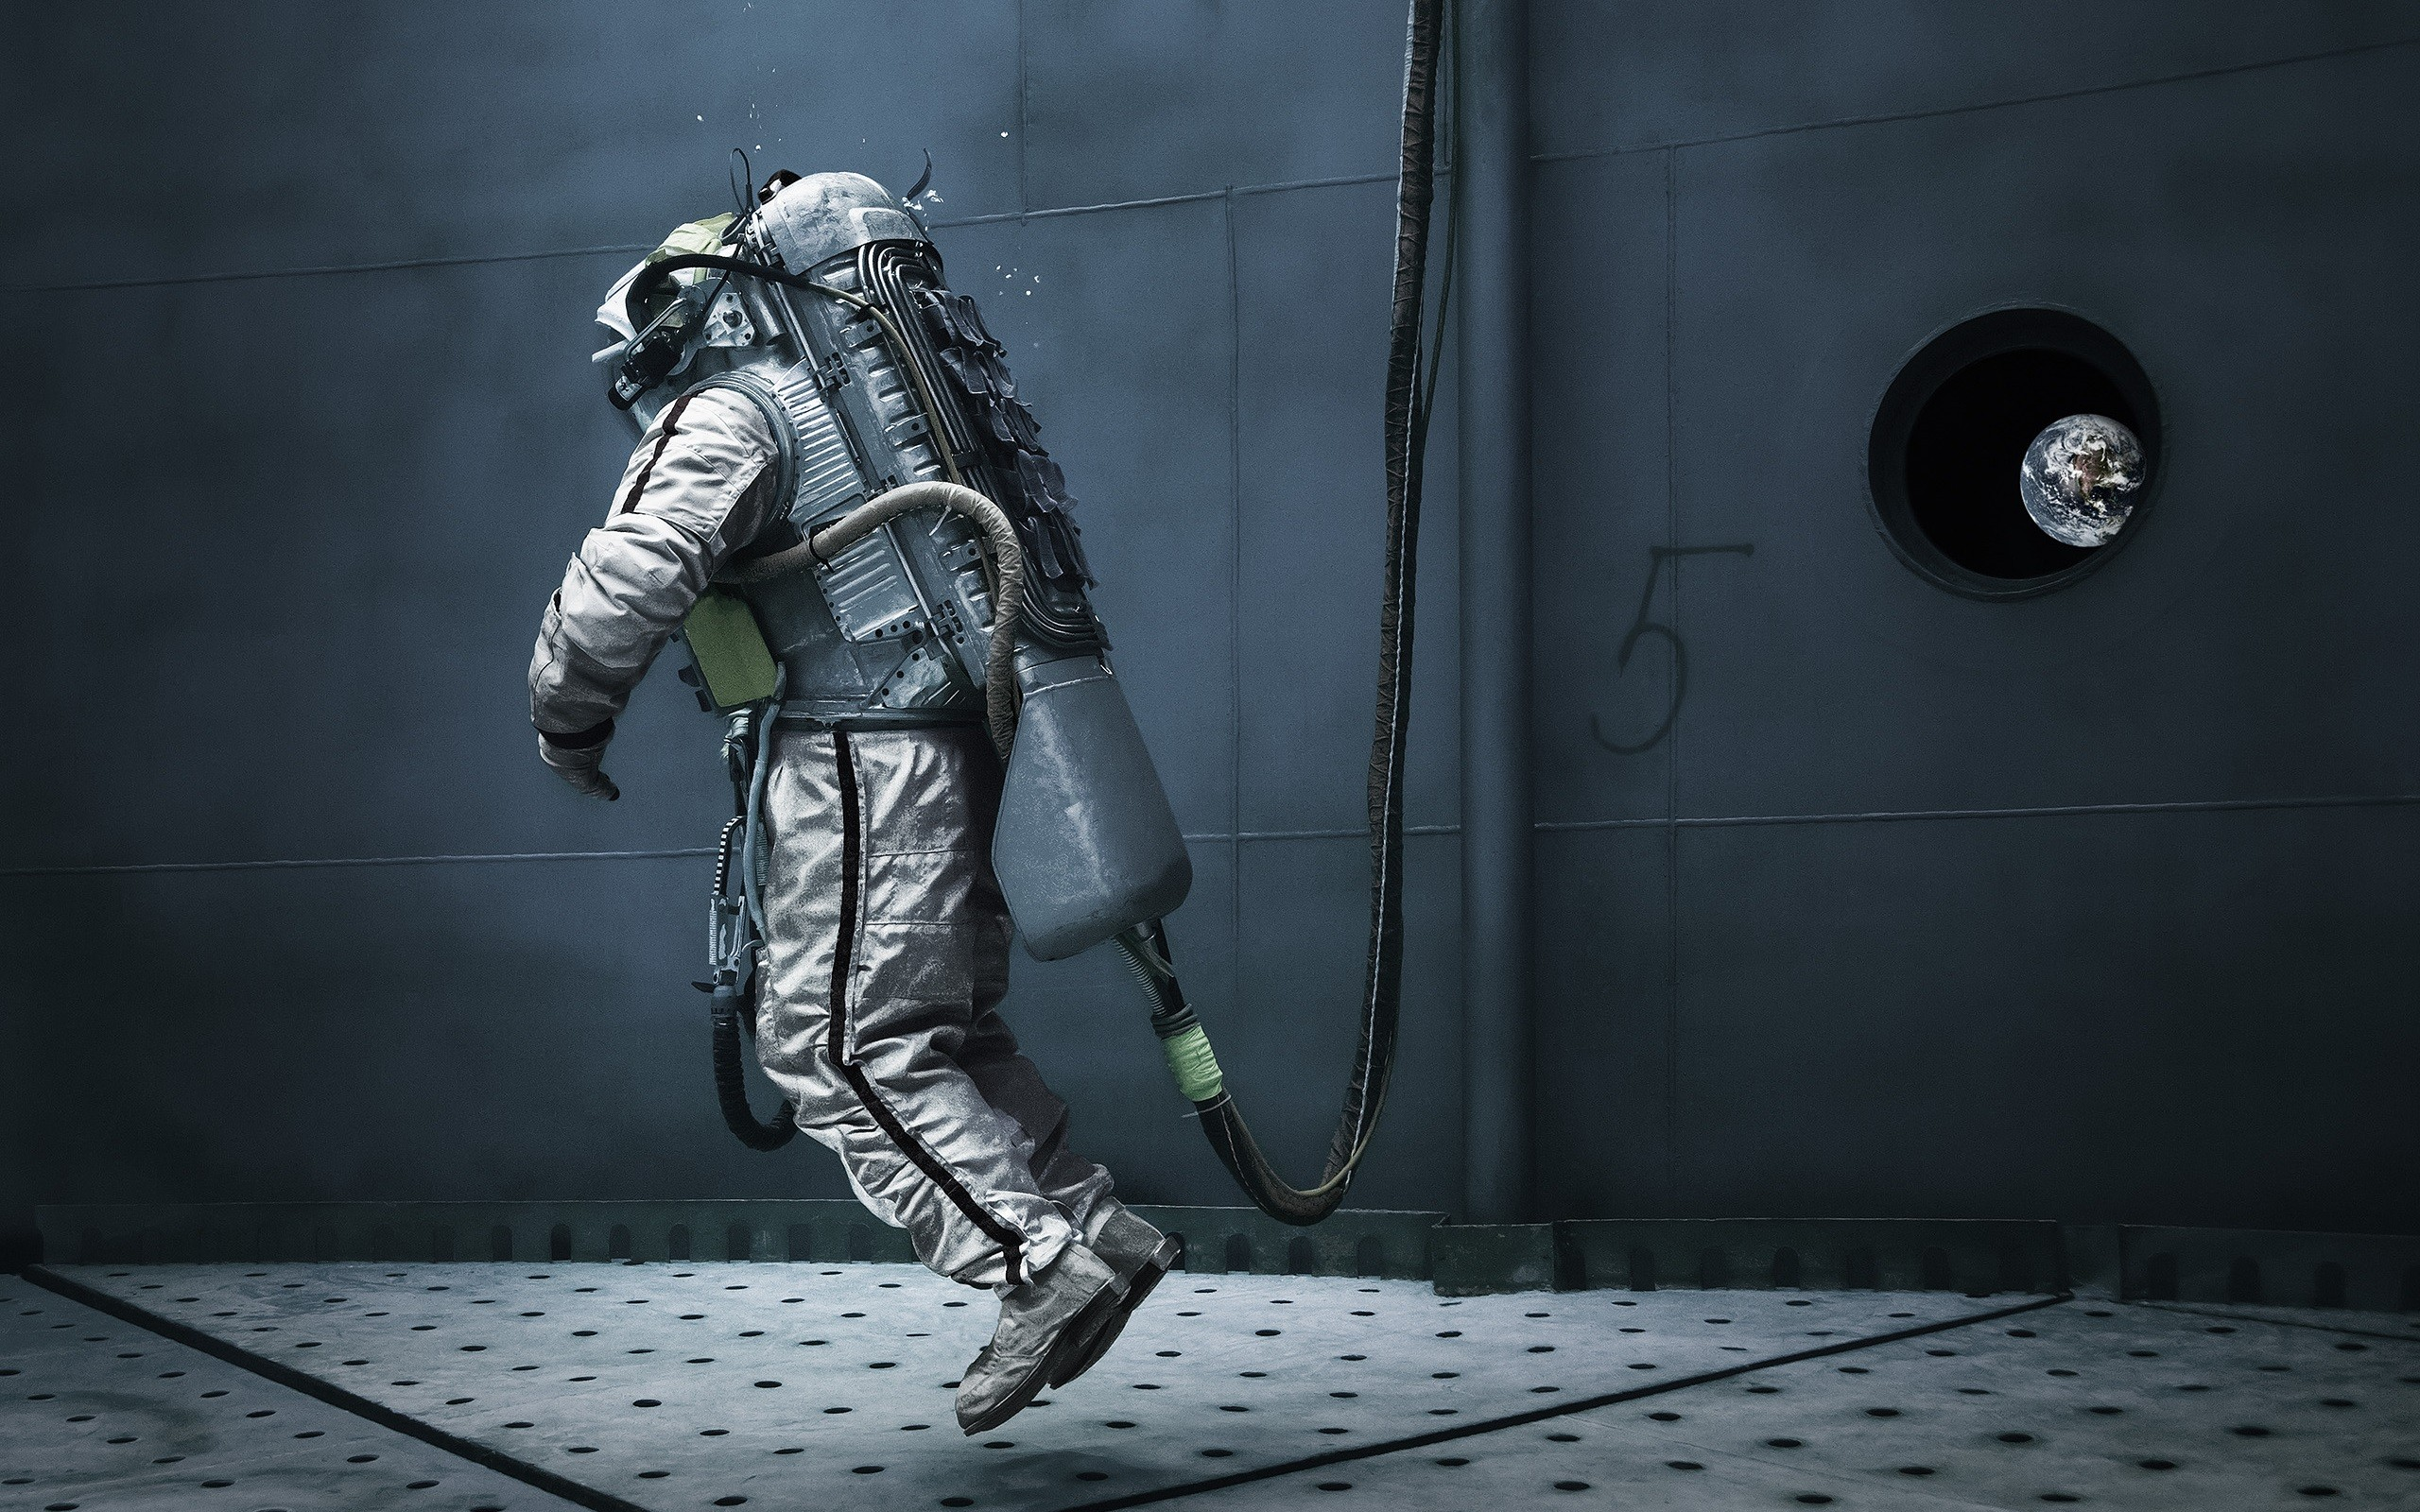 General 2560x1600 astronaut Earth space floating numbers machine window